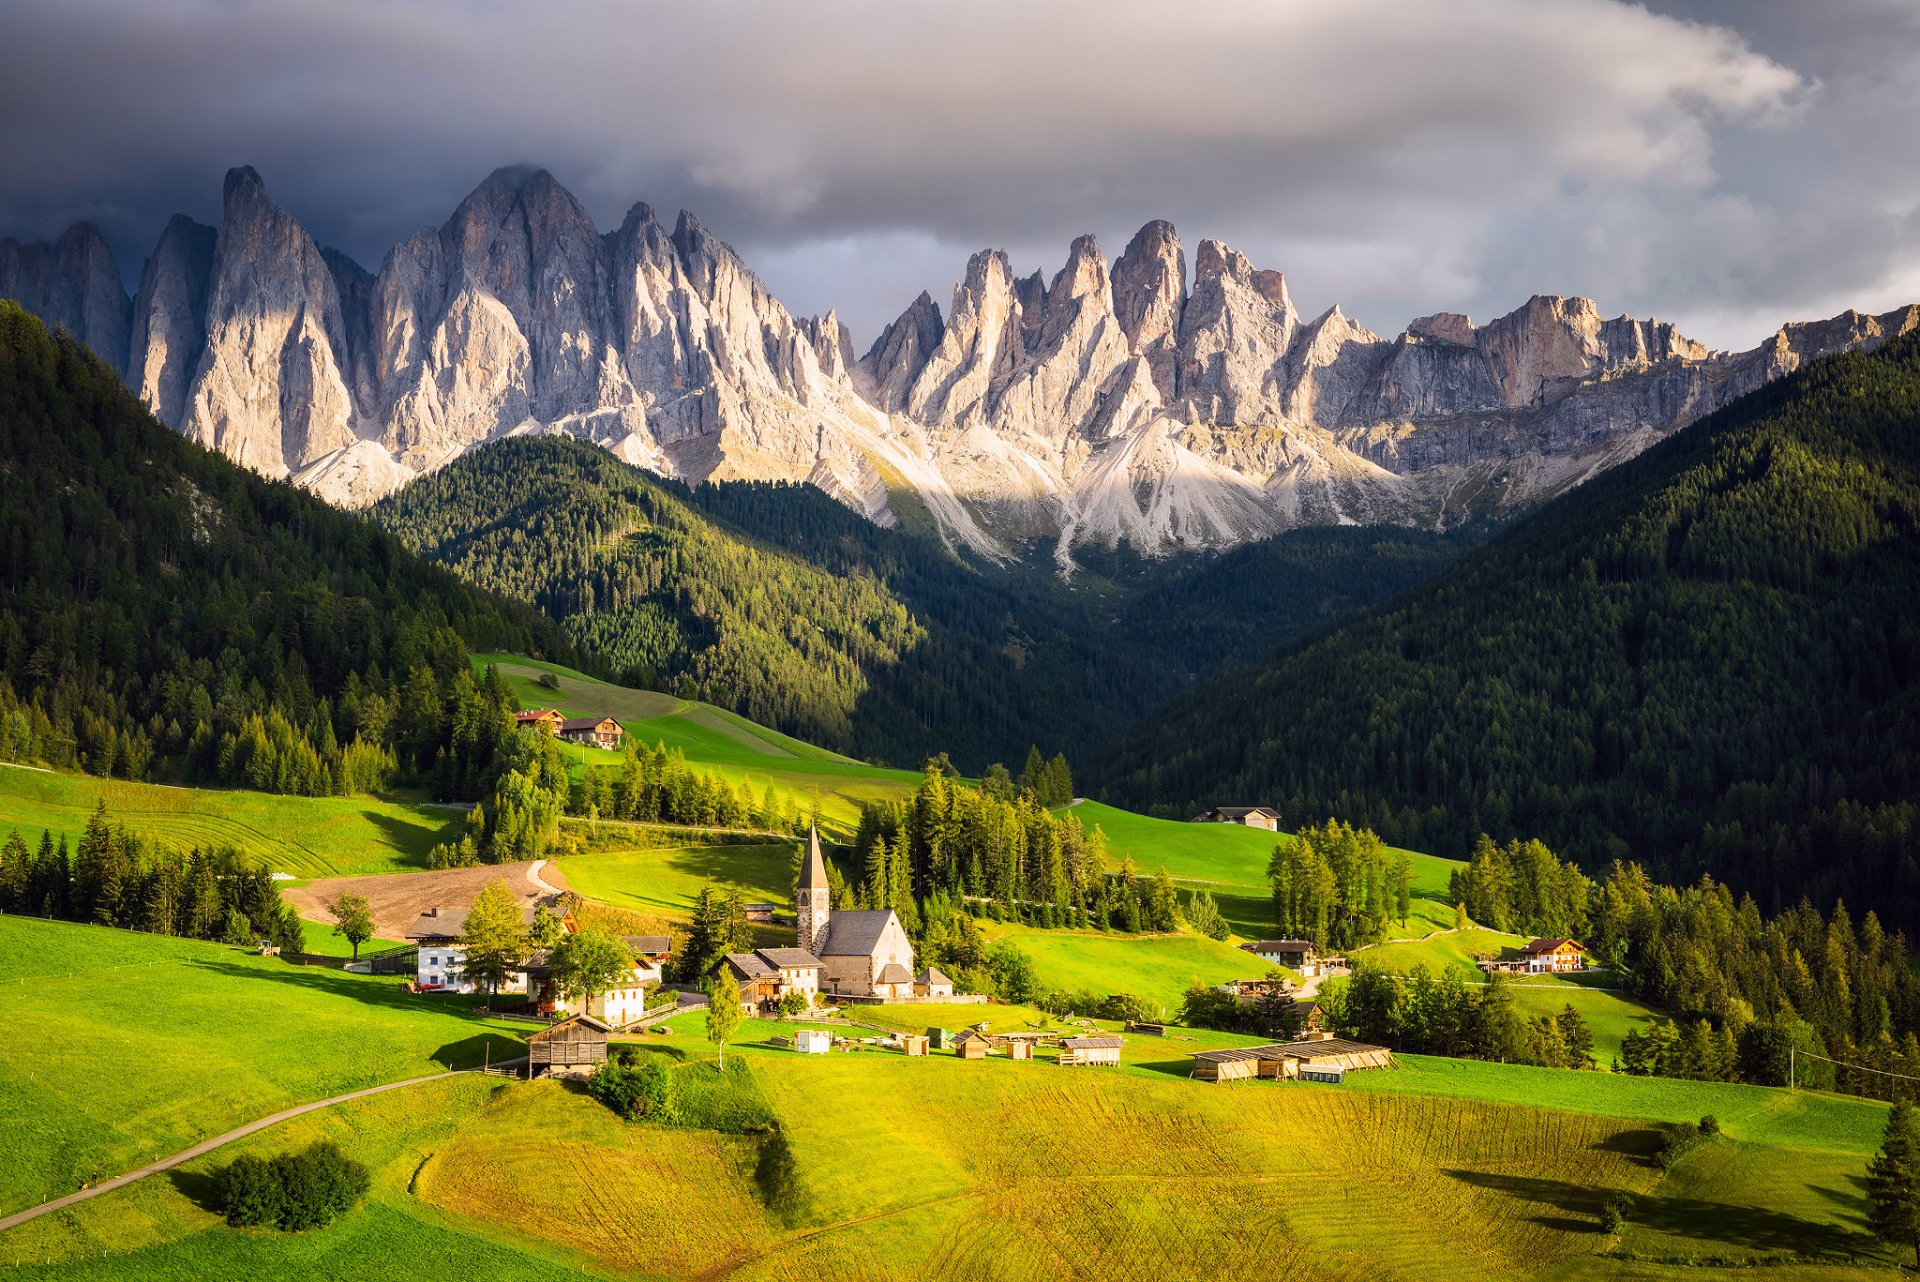 20 Dolomites Hd Wallpapers Background Images Wallpaper Abyss